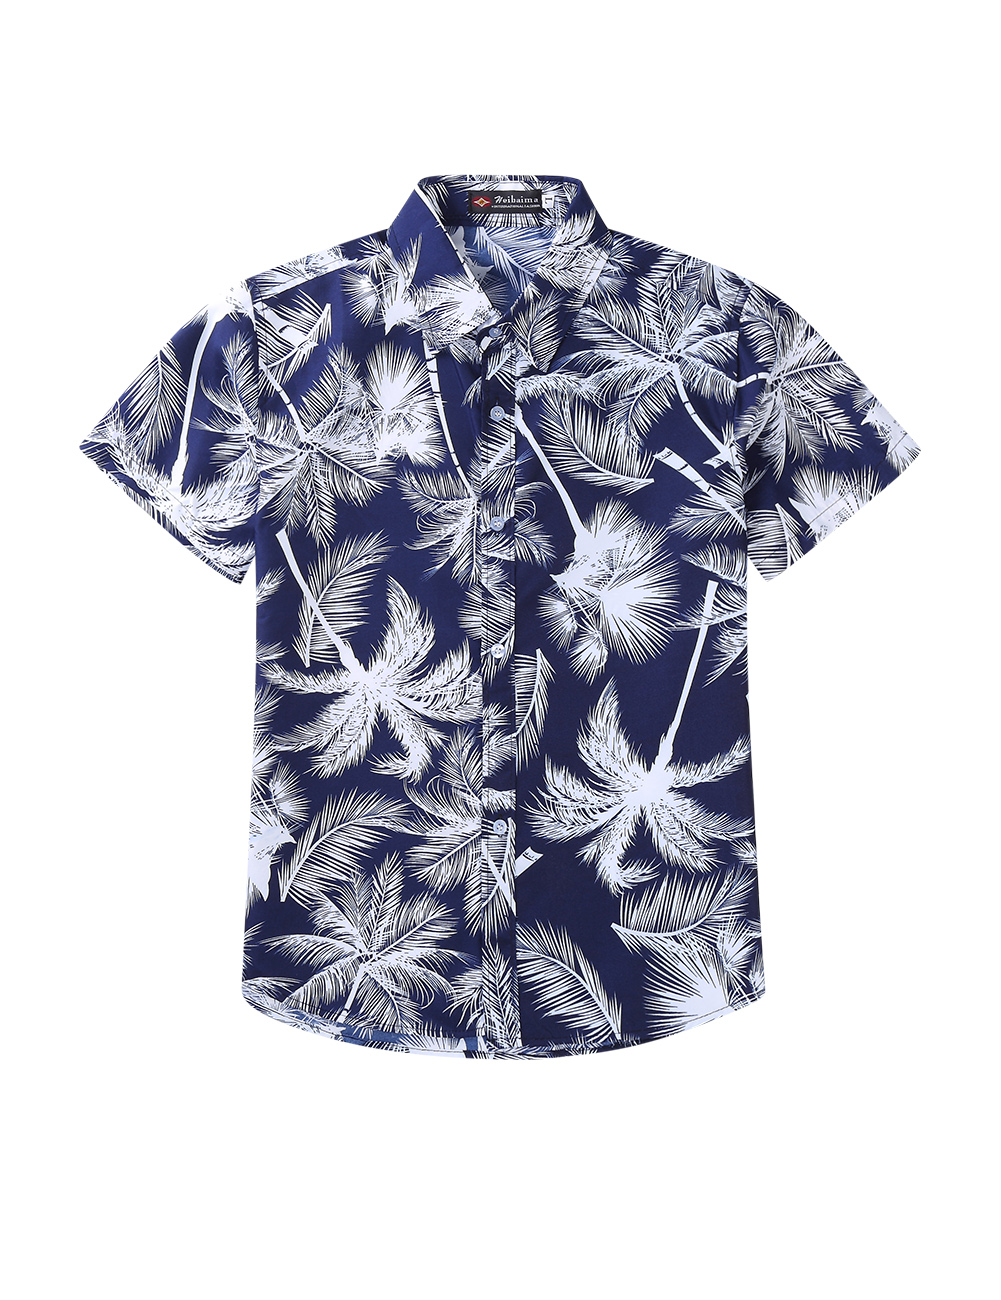 Summer Casual All-match Cool Printing Short Sleeve Shirt for Women Men Couples 17#_L